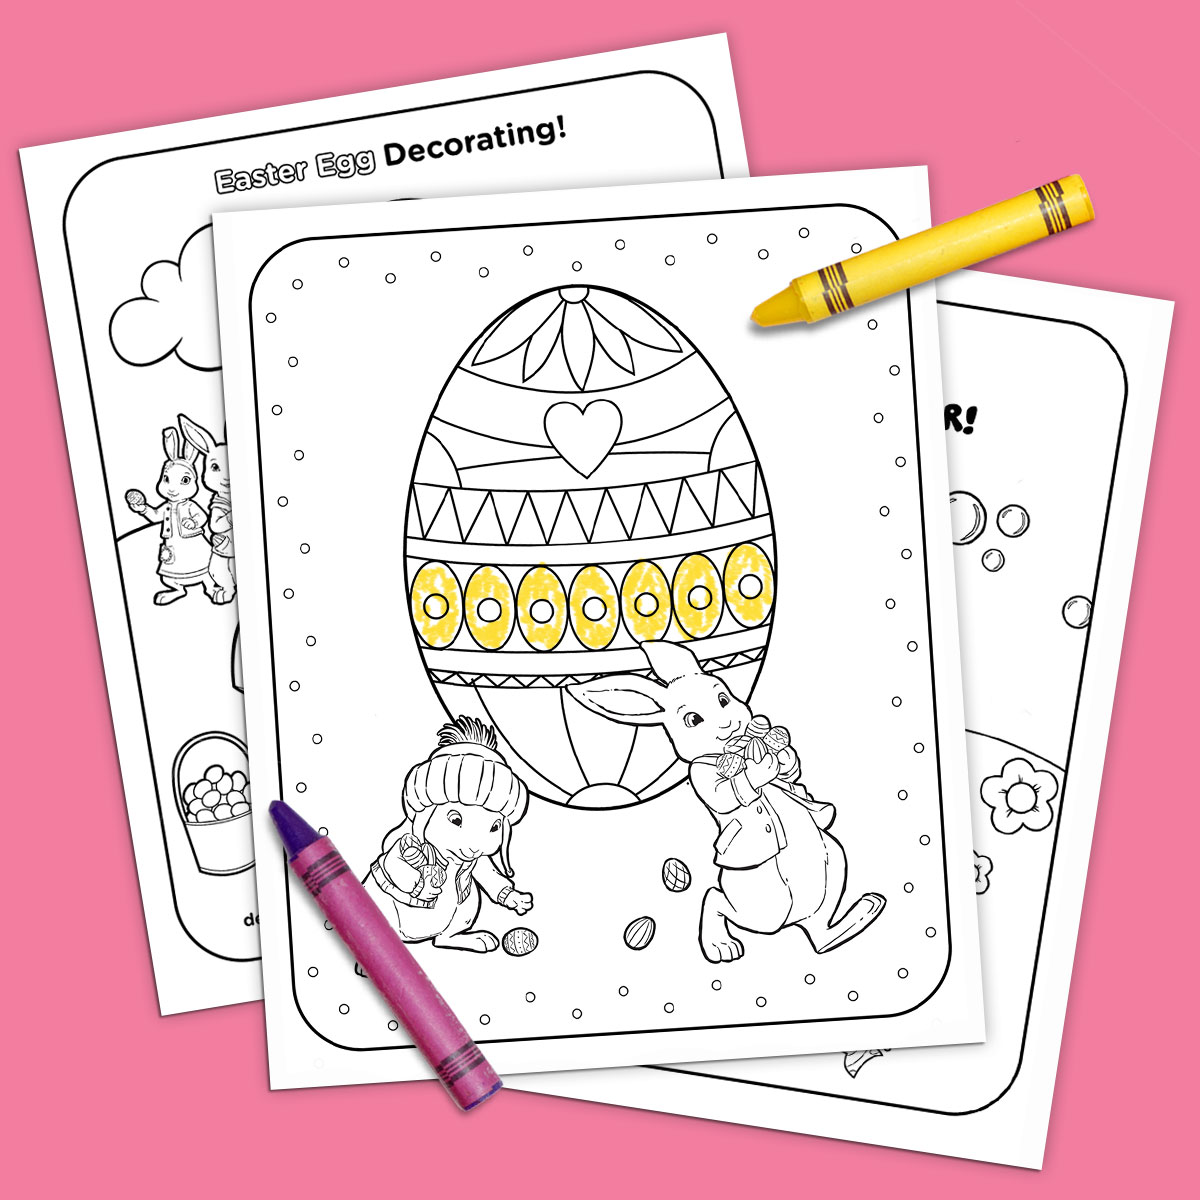 160 Most Inspiring Easter Coloring Pages Images In 2019 Coloring